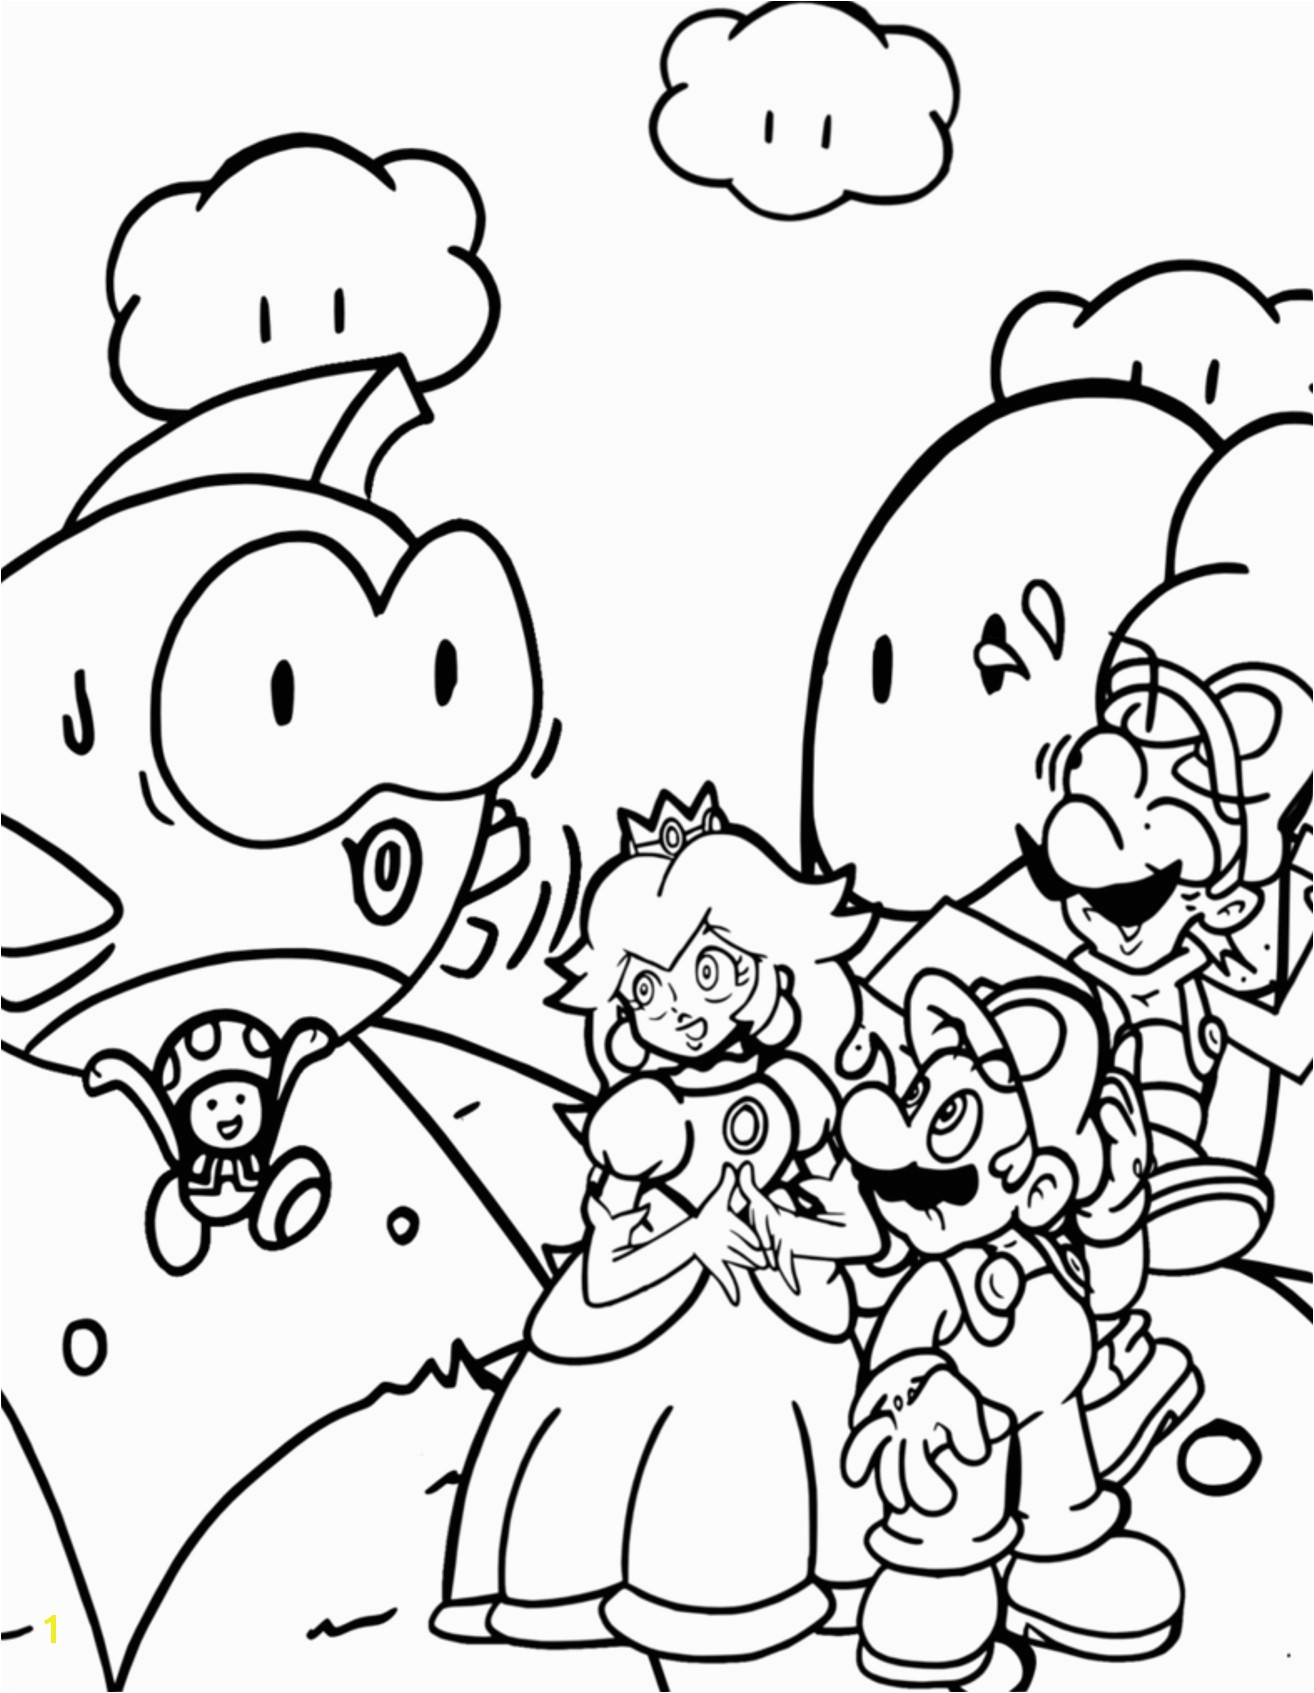 Mario Luigi and toad Coloring Pages New 20 Awesome Super Mario Bros Coloring Pages 16